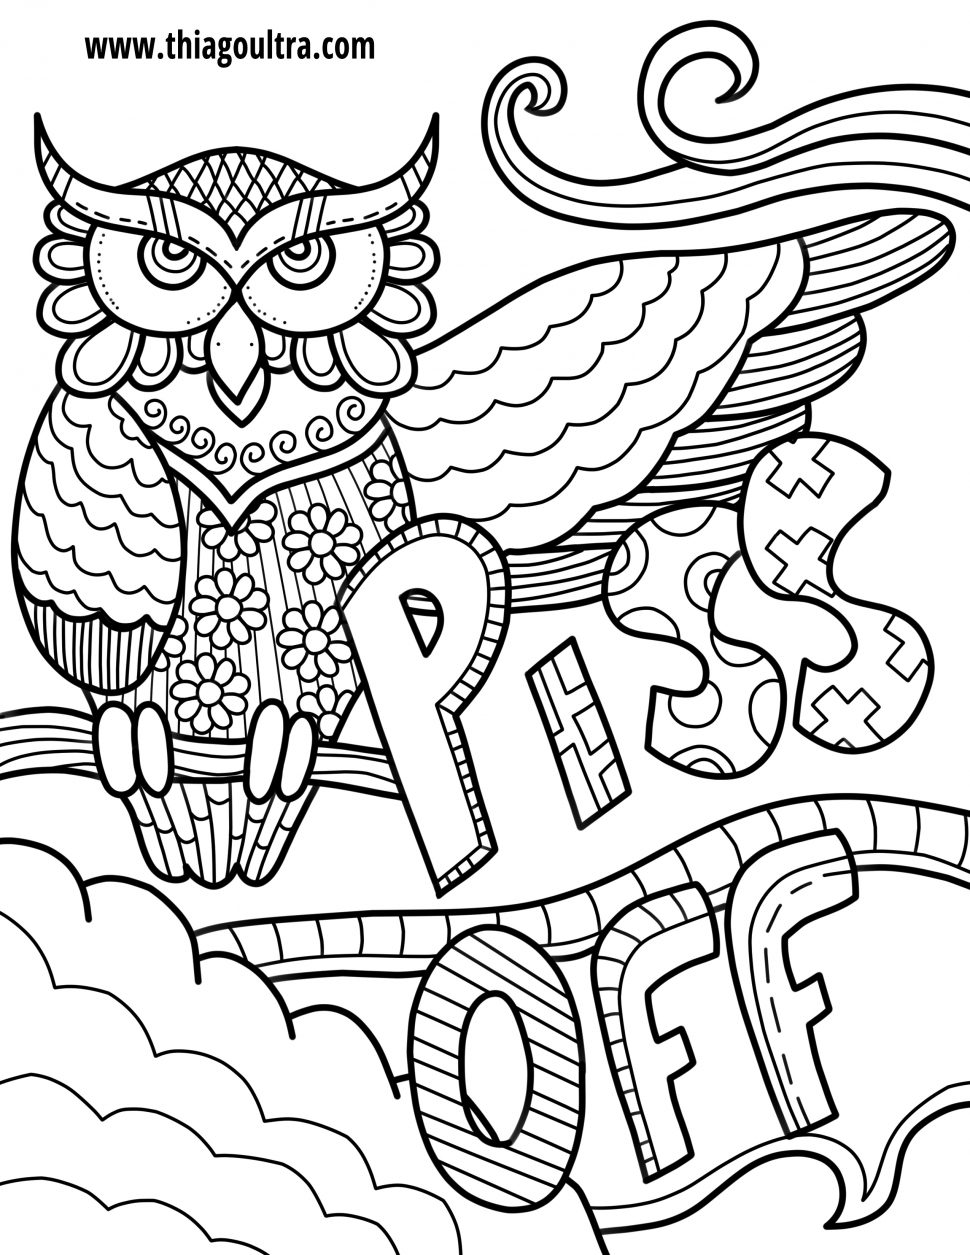 New Years Coloring Pages | Free download best New Years Coloring ...